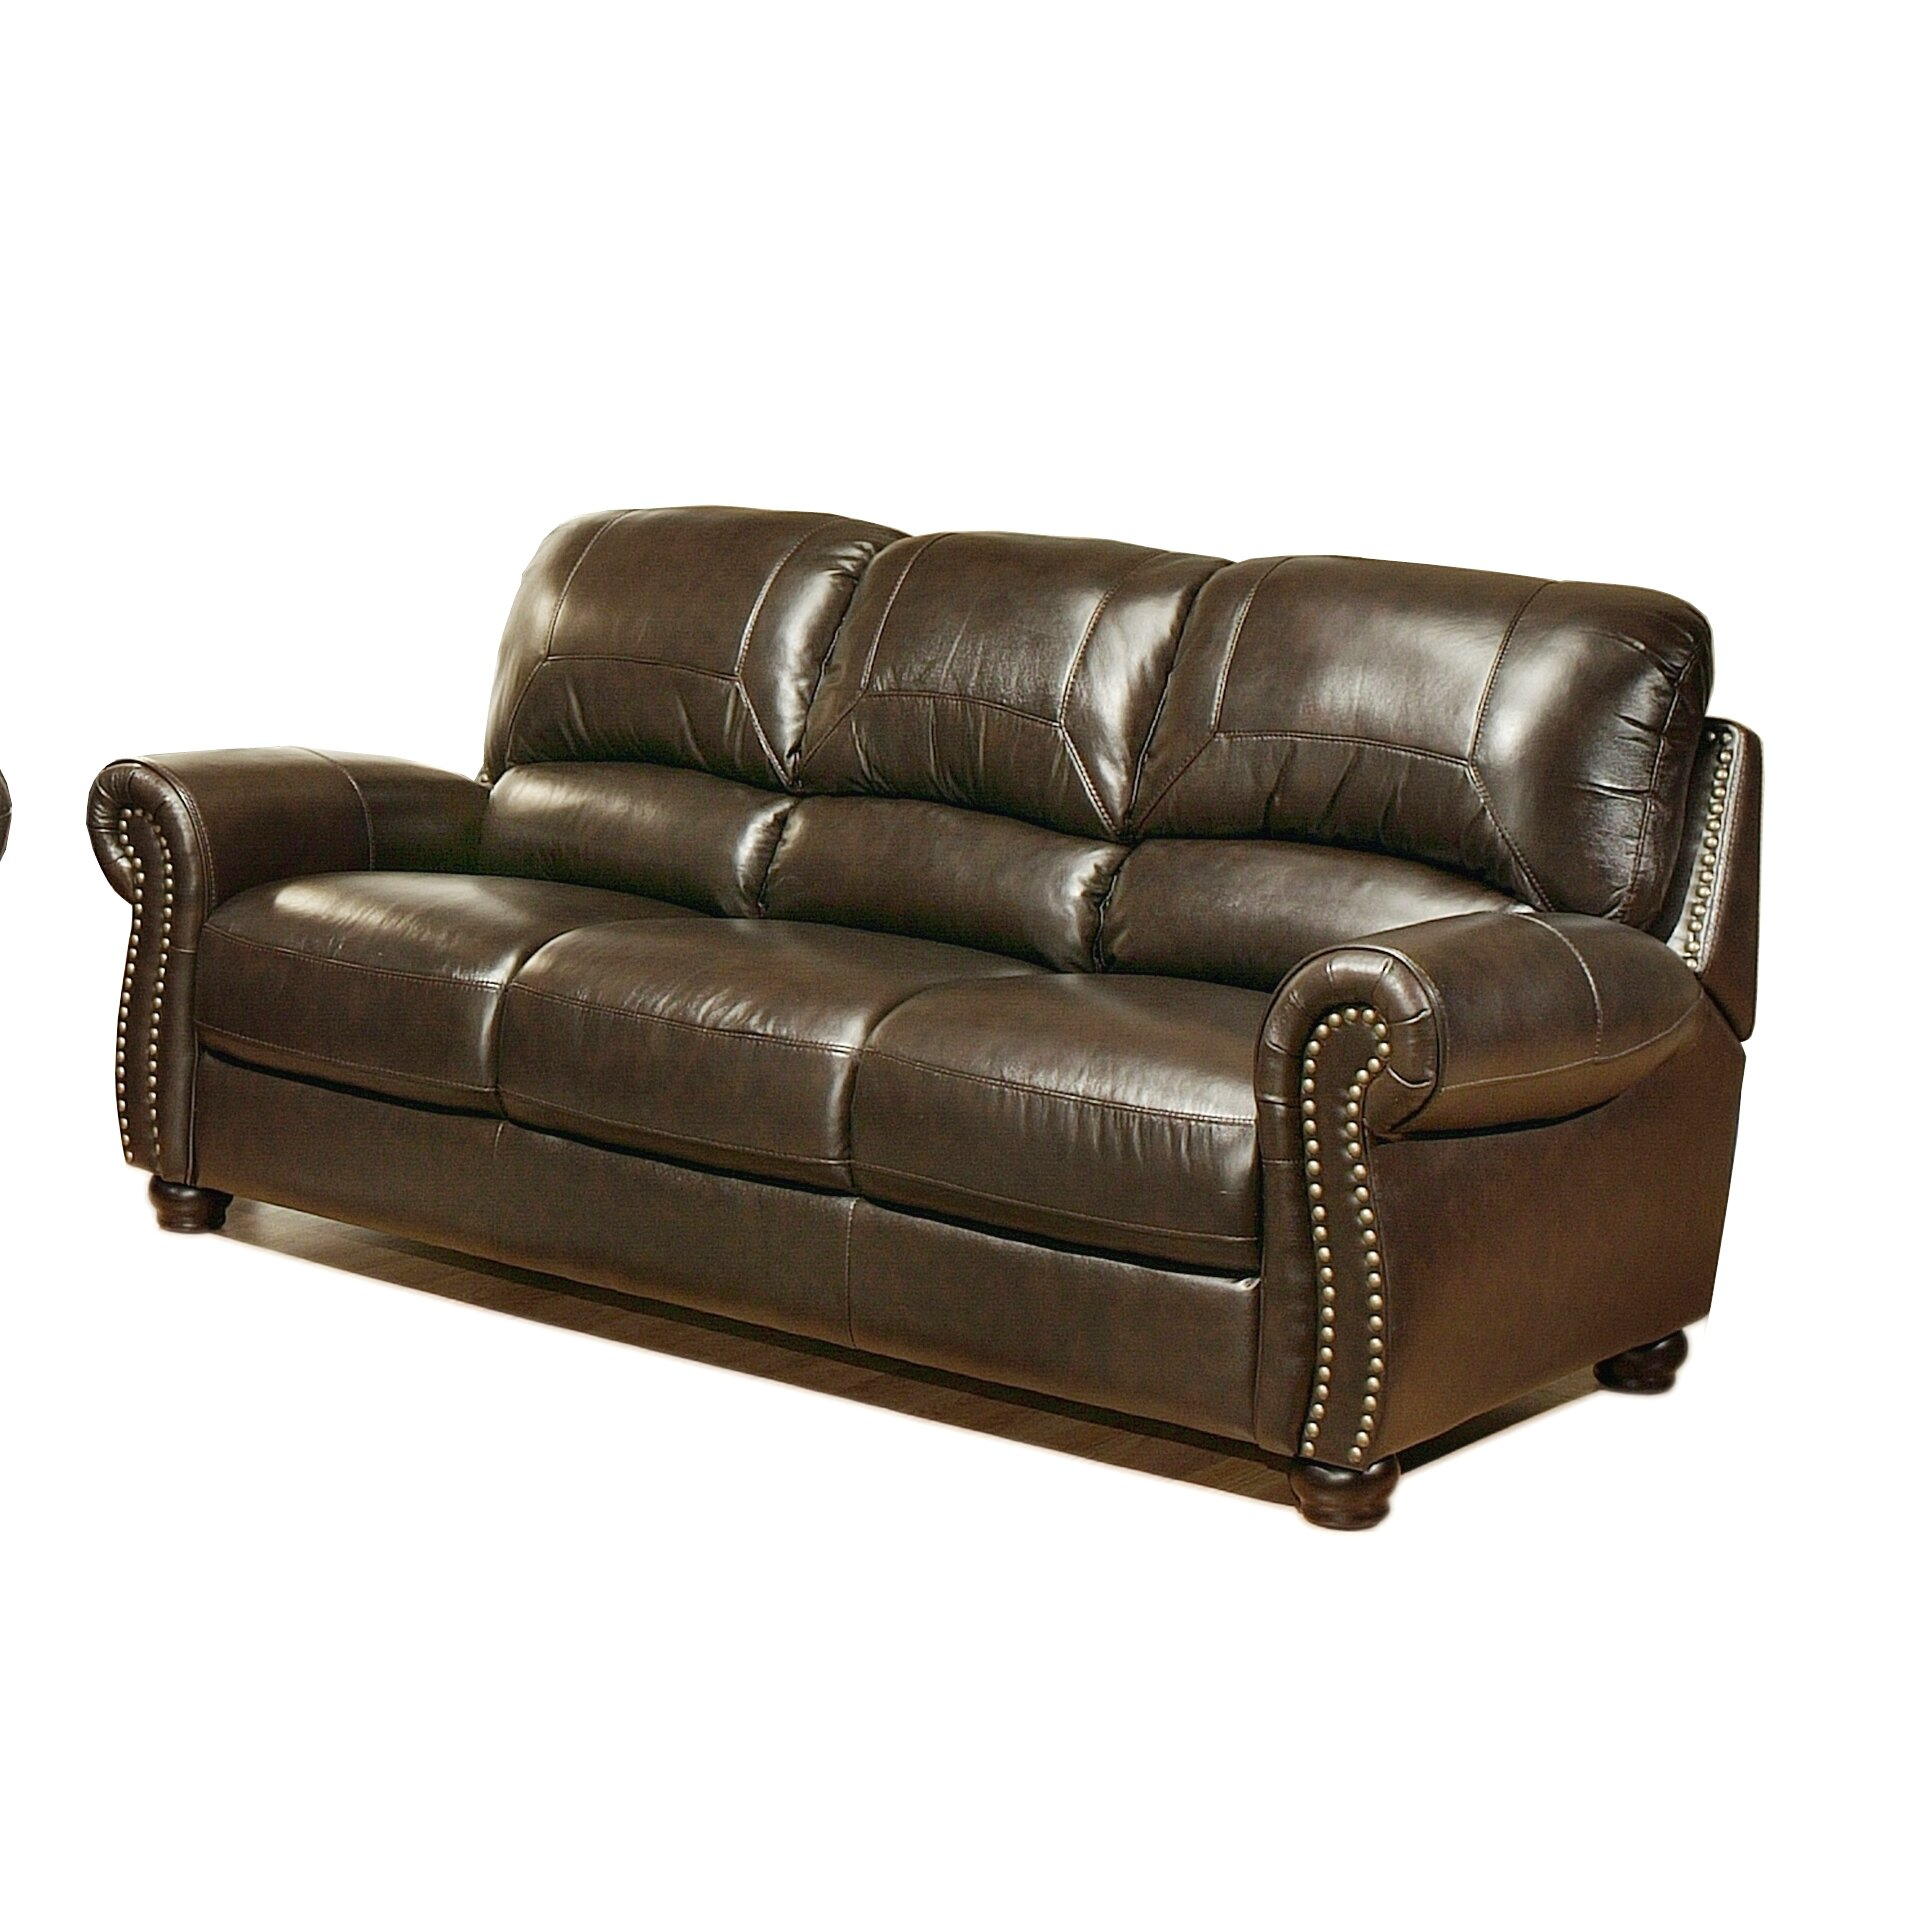 Abbyson Leather Sofa Reviews Leather Sofa Guide Furniture Reviews Guides And Tips Thesofa